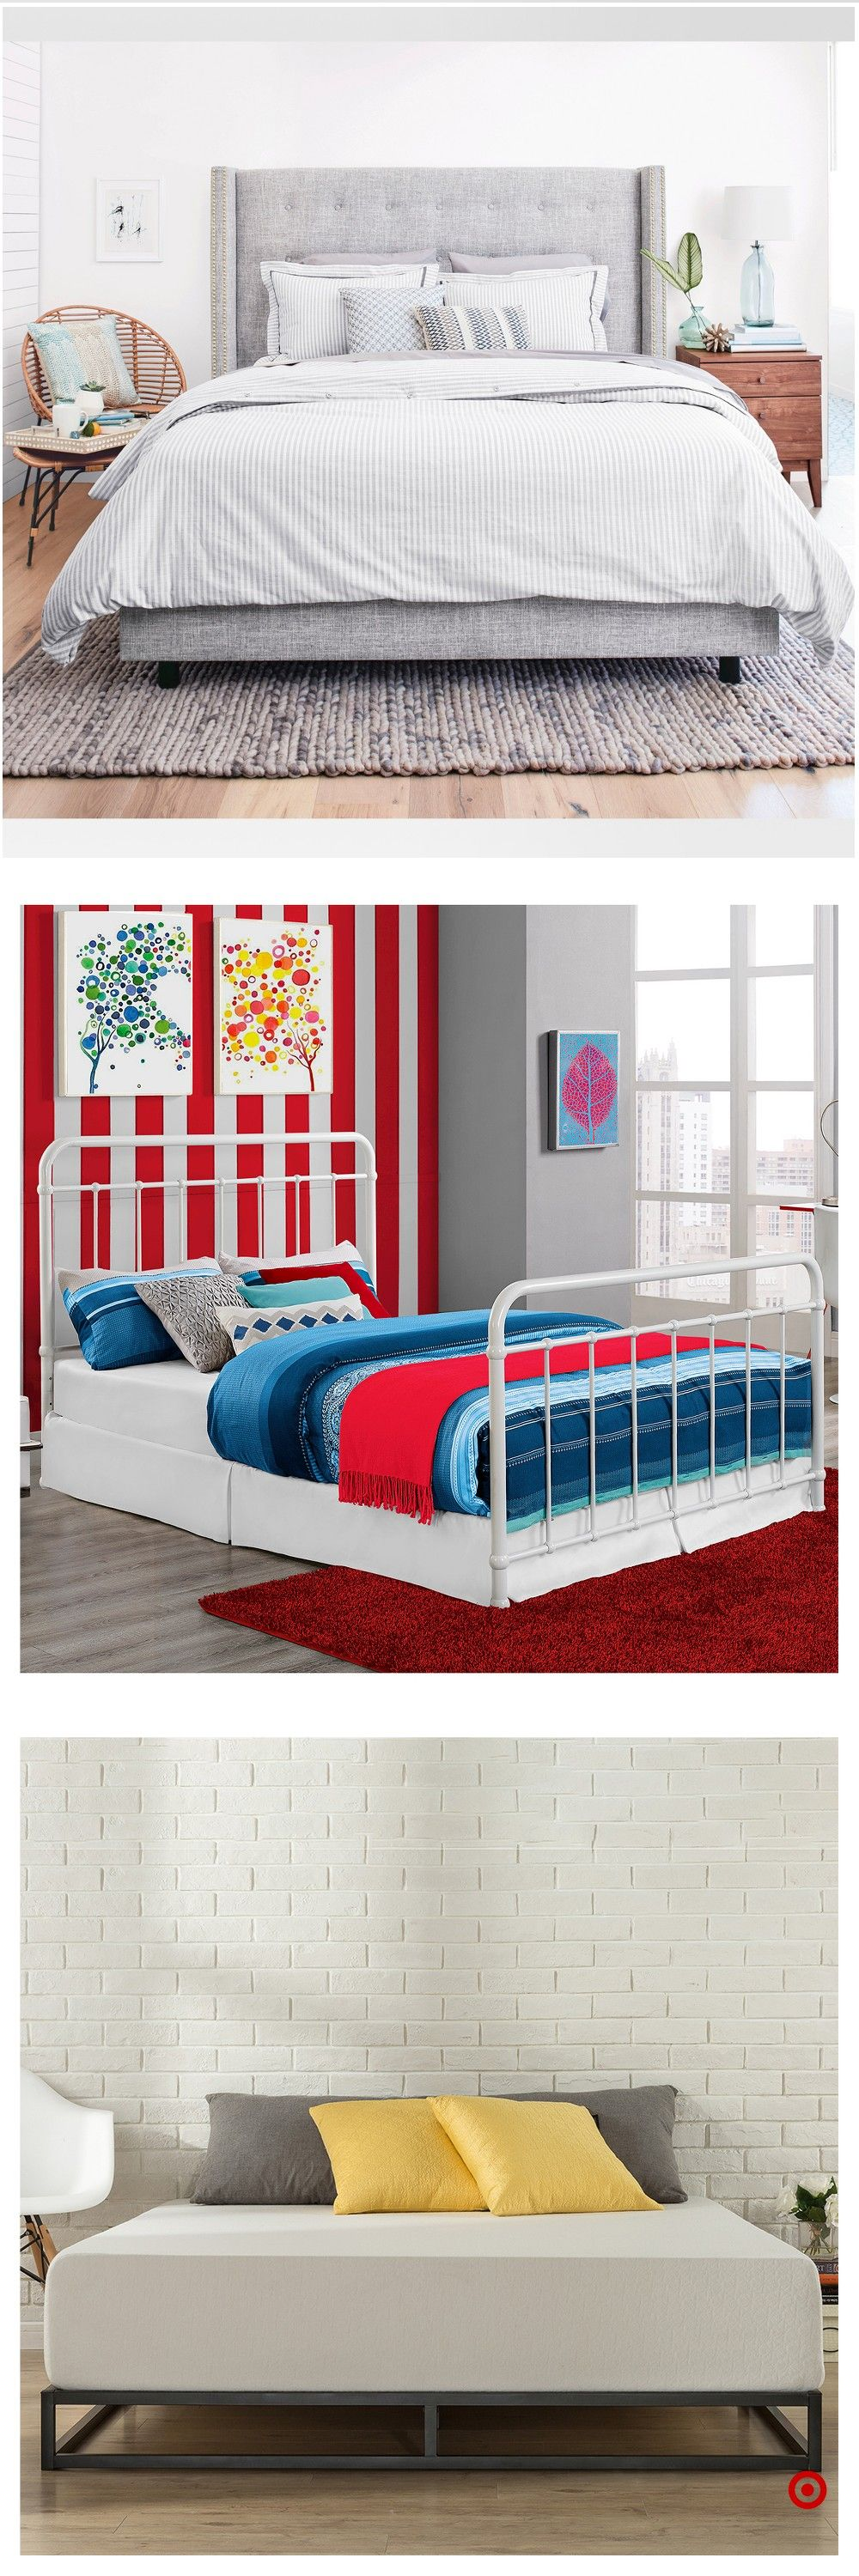 Shop Target For Platform Bed Storage Bed You Will Love At Great Low